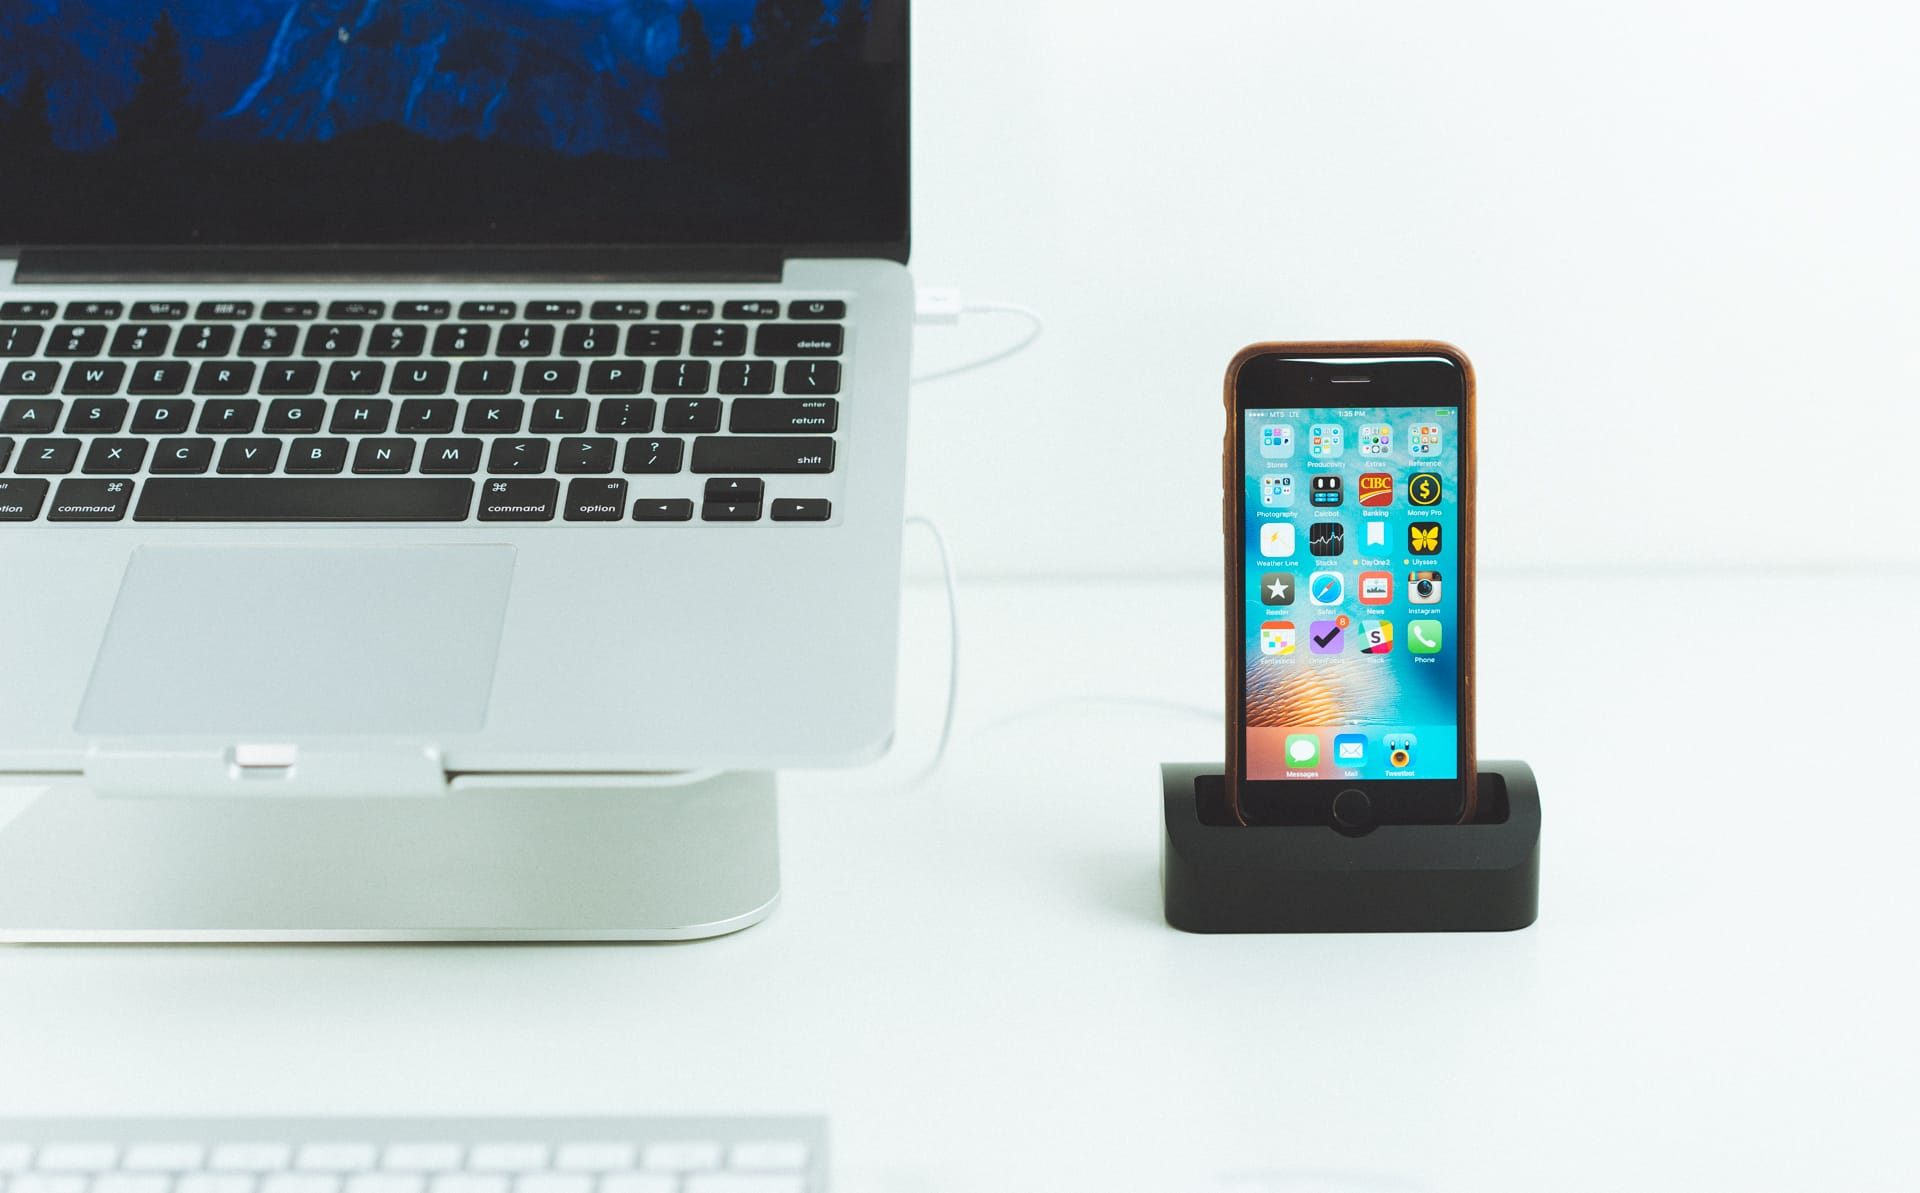 Our favorite iPhone 6s and 6s Plus dock